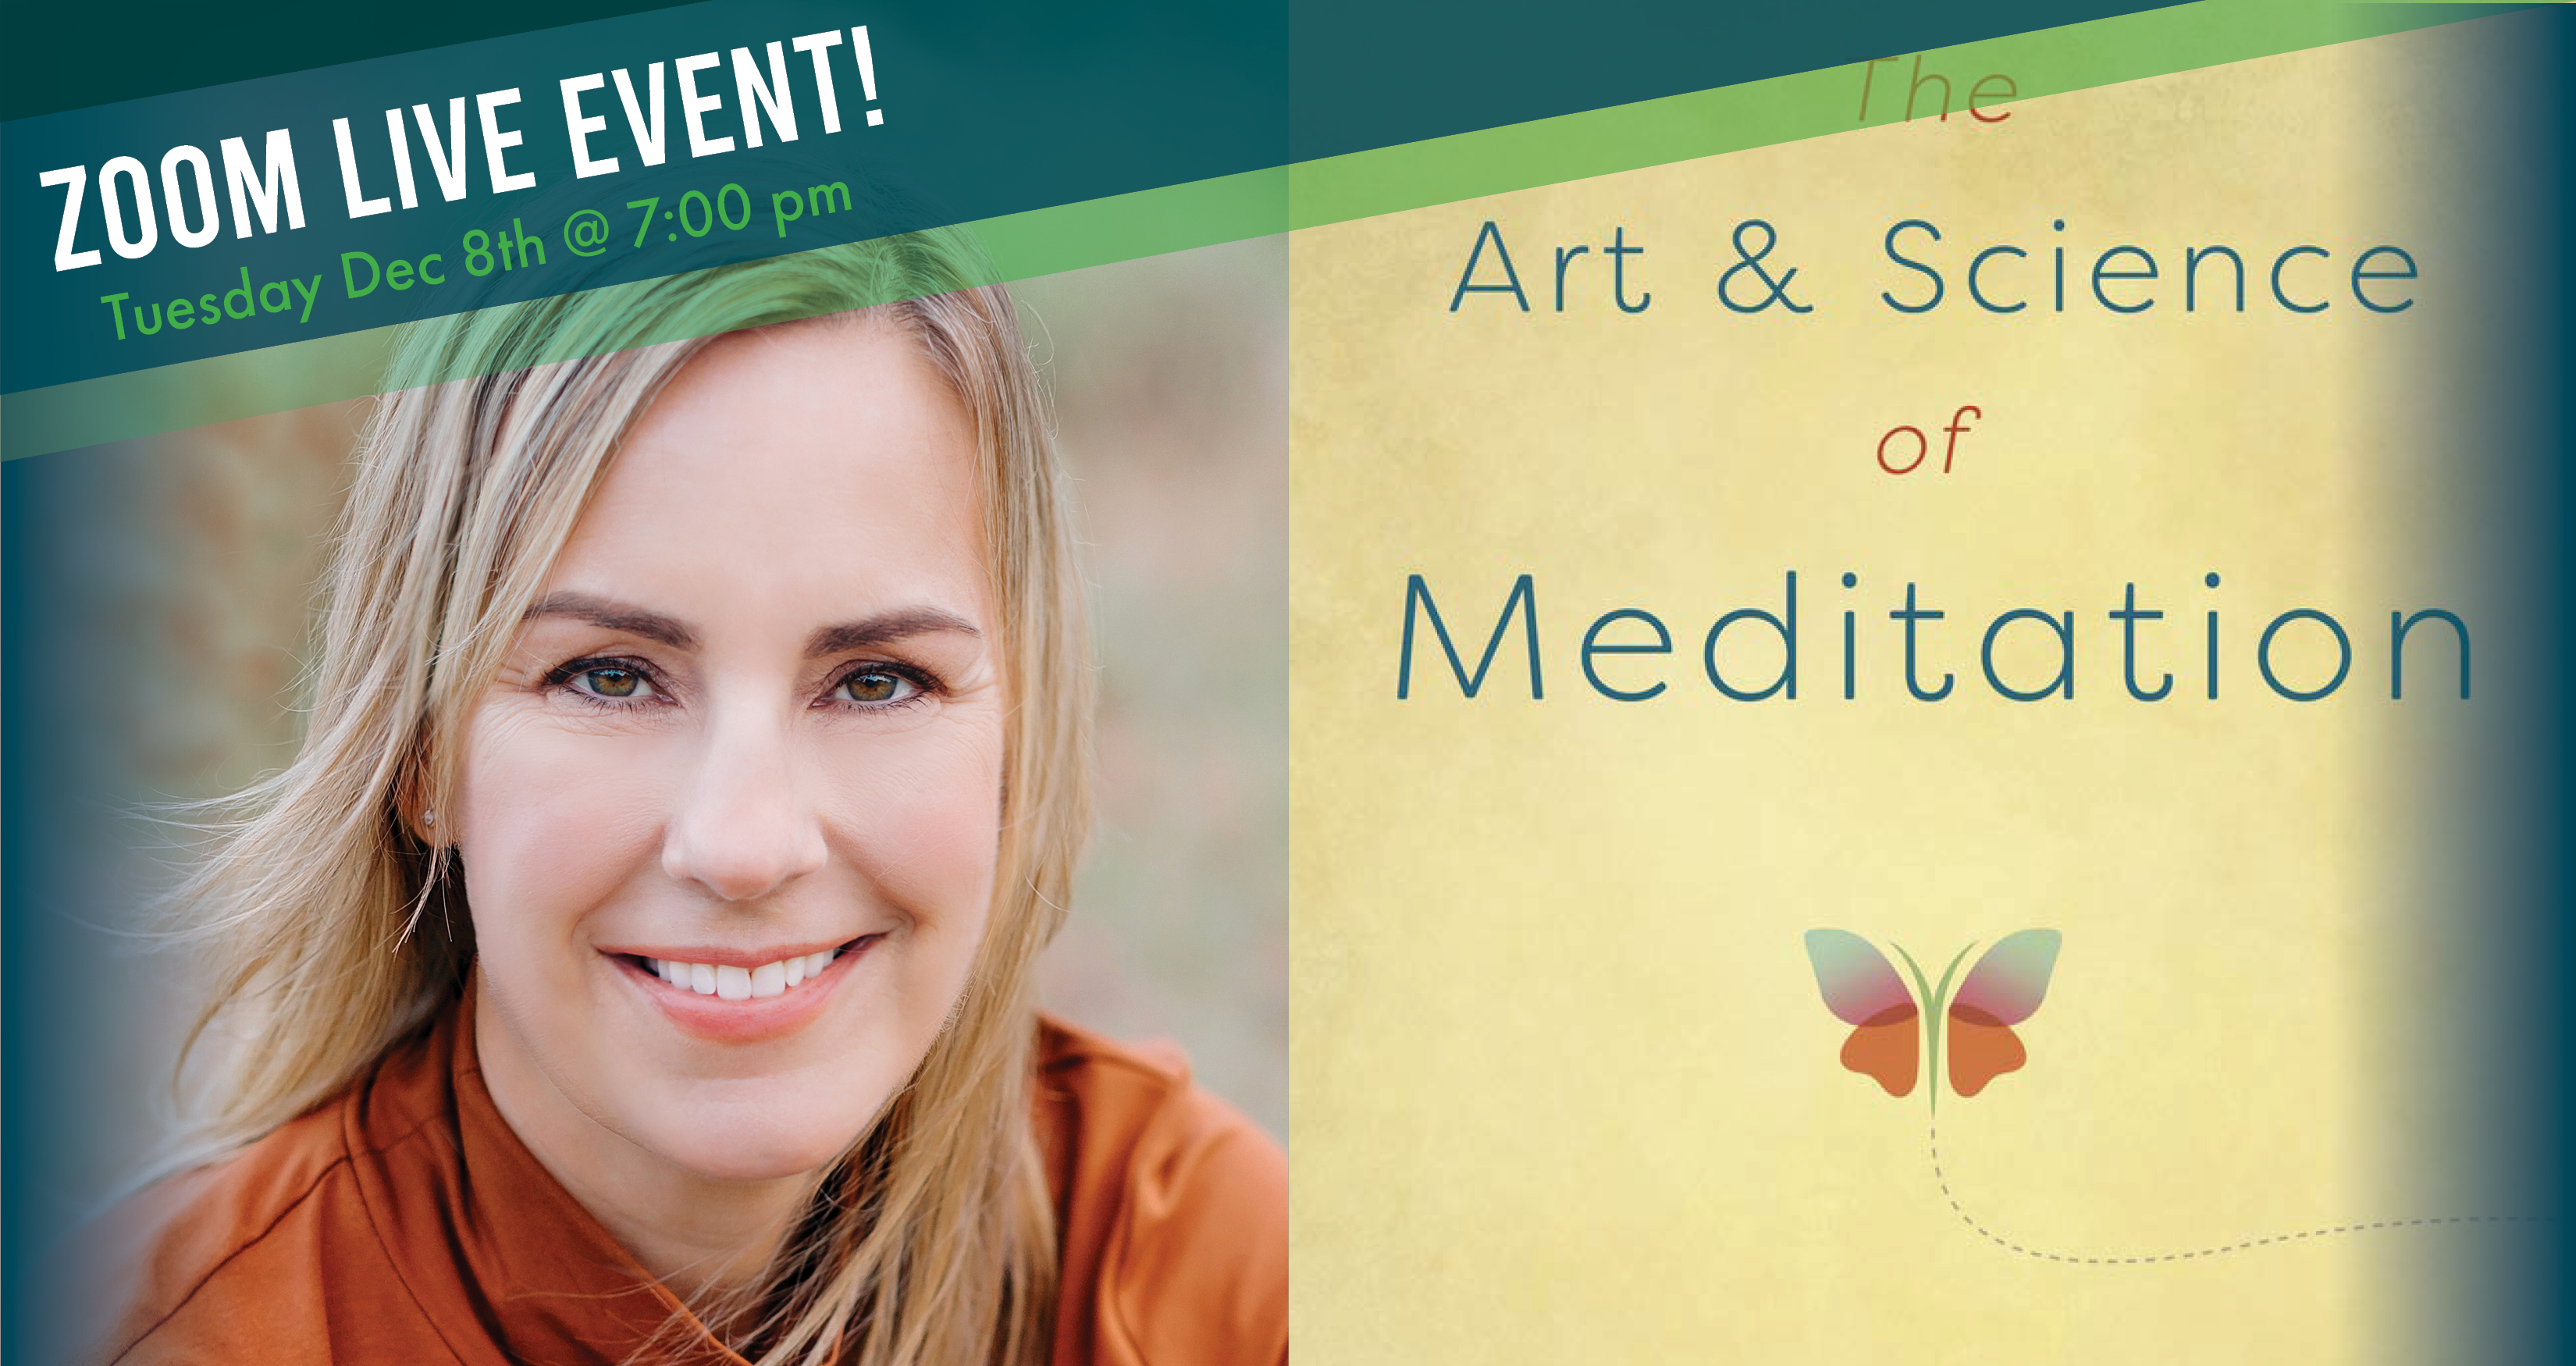 Guided Meditation with Lisa Erickson - The Art & Science of Meditation